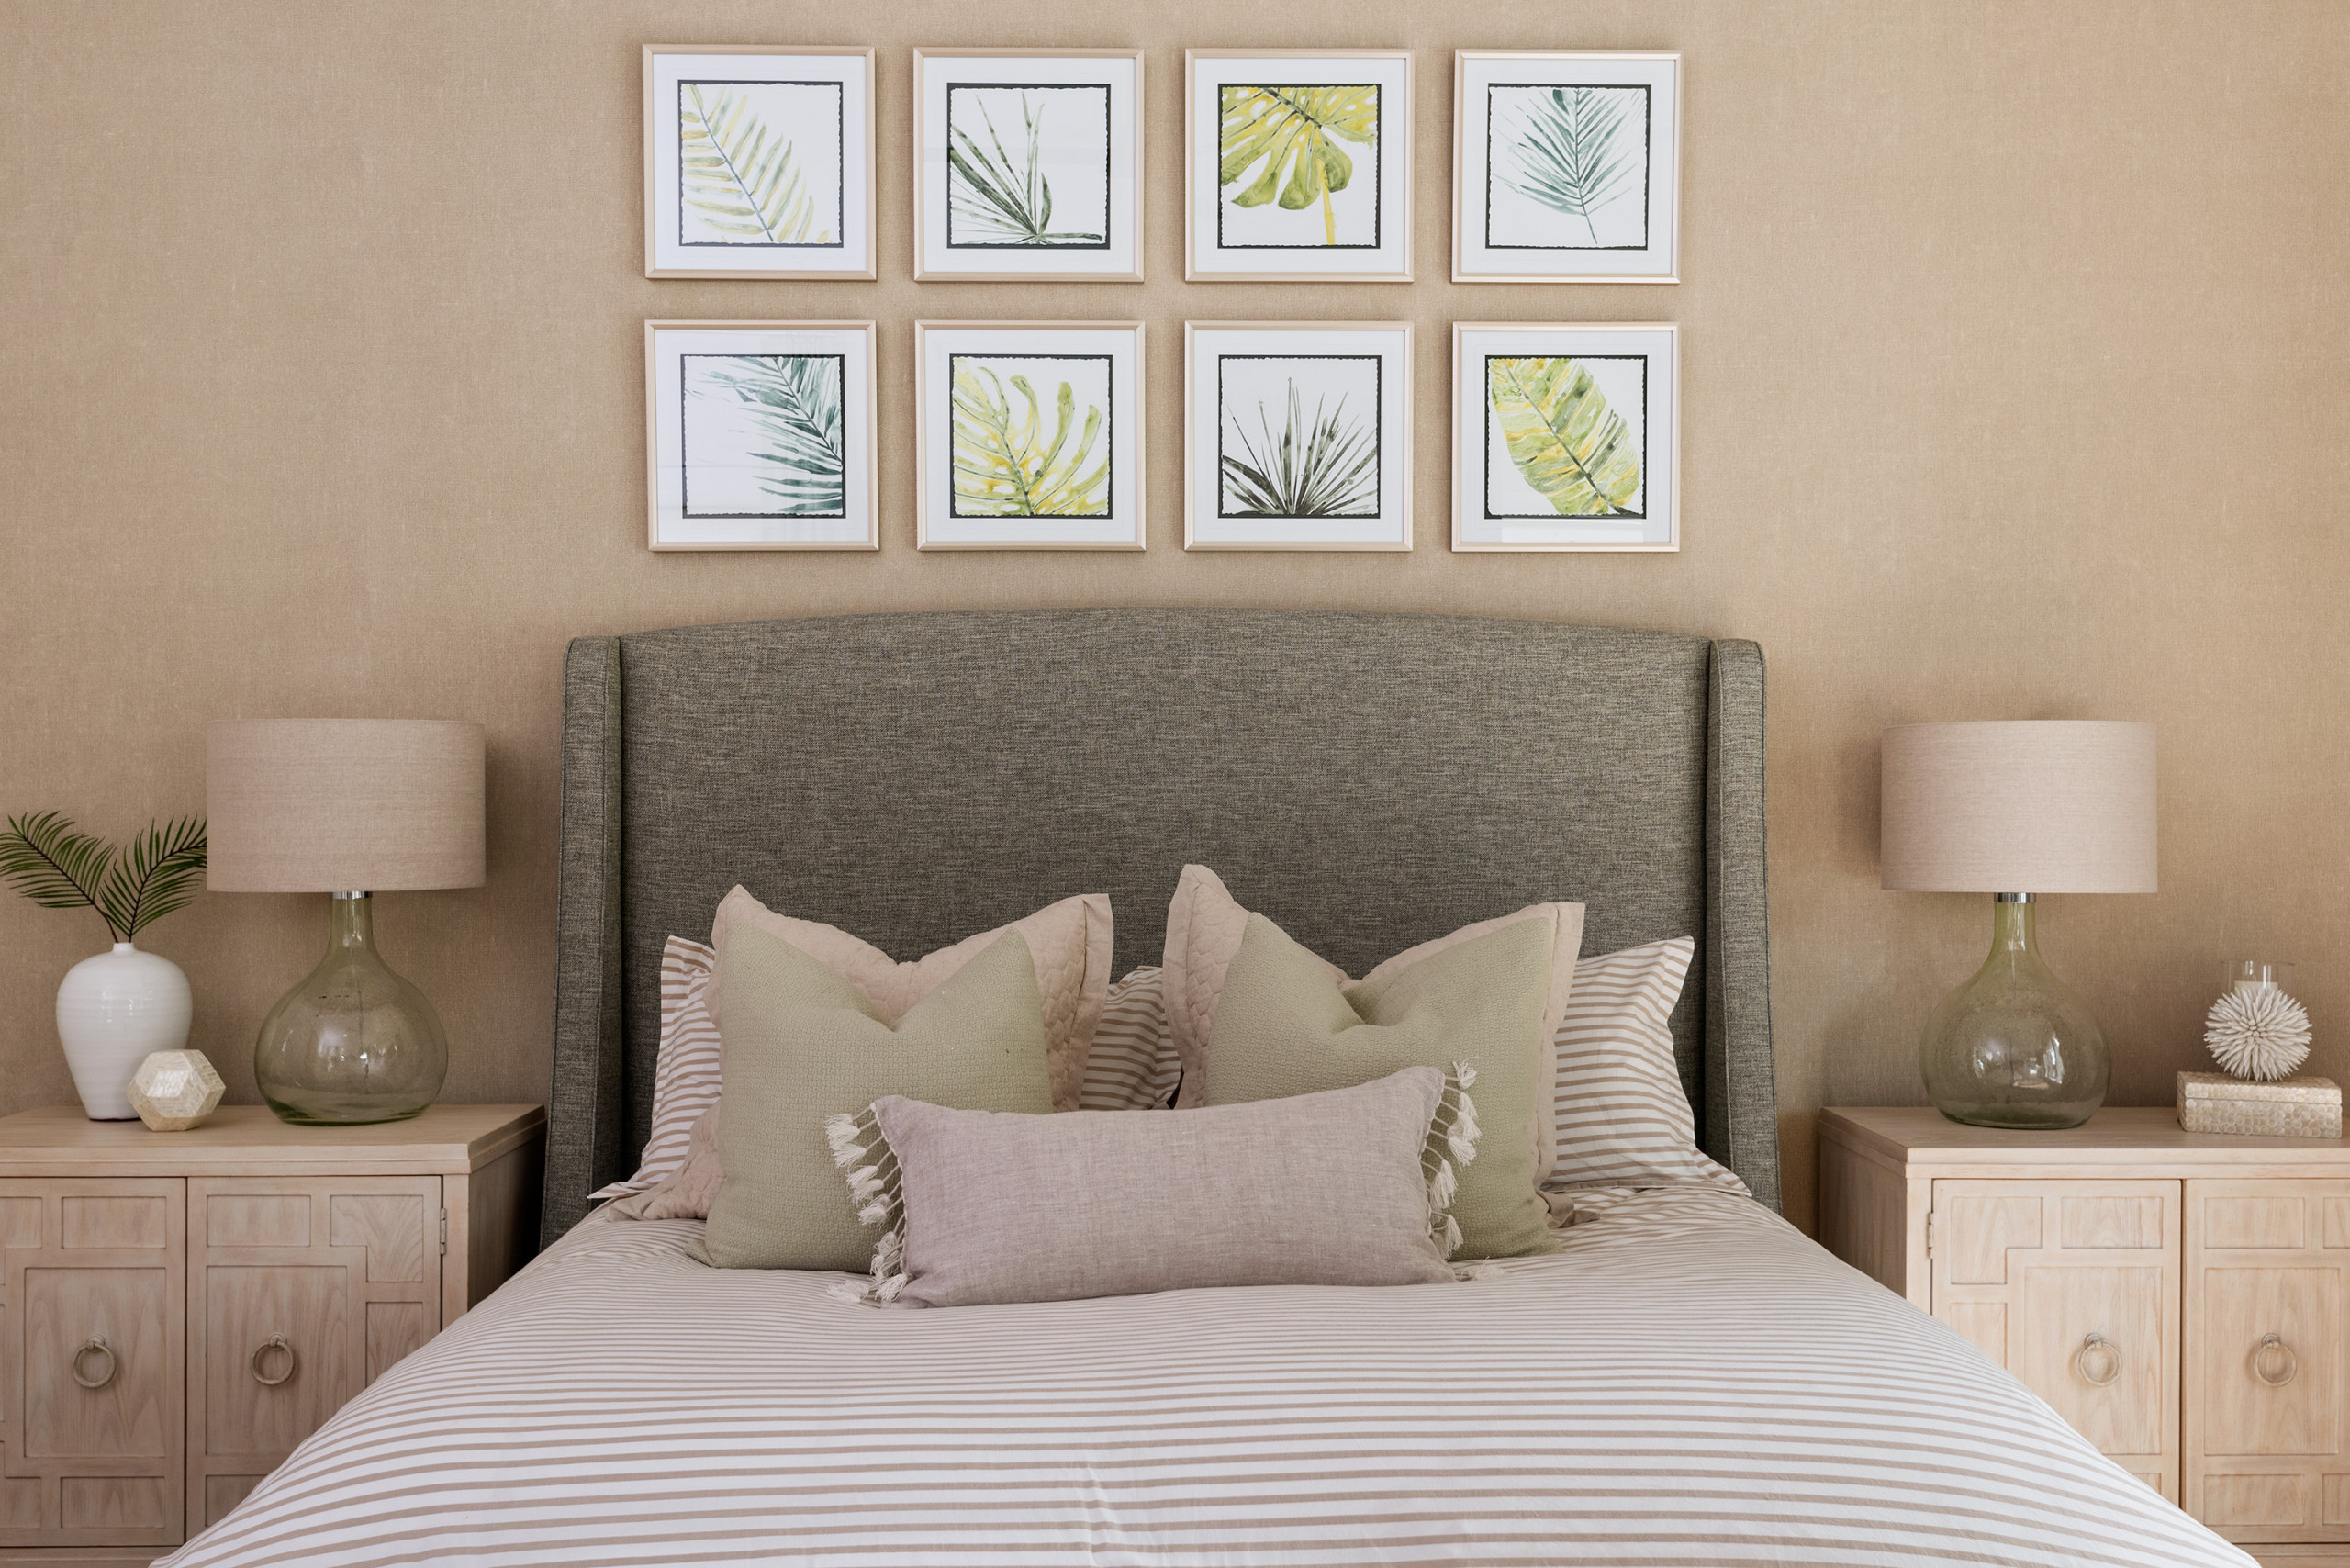 4 Beautiful Coastal Bedroom With Beige Walls Pictures & Ideas